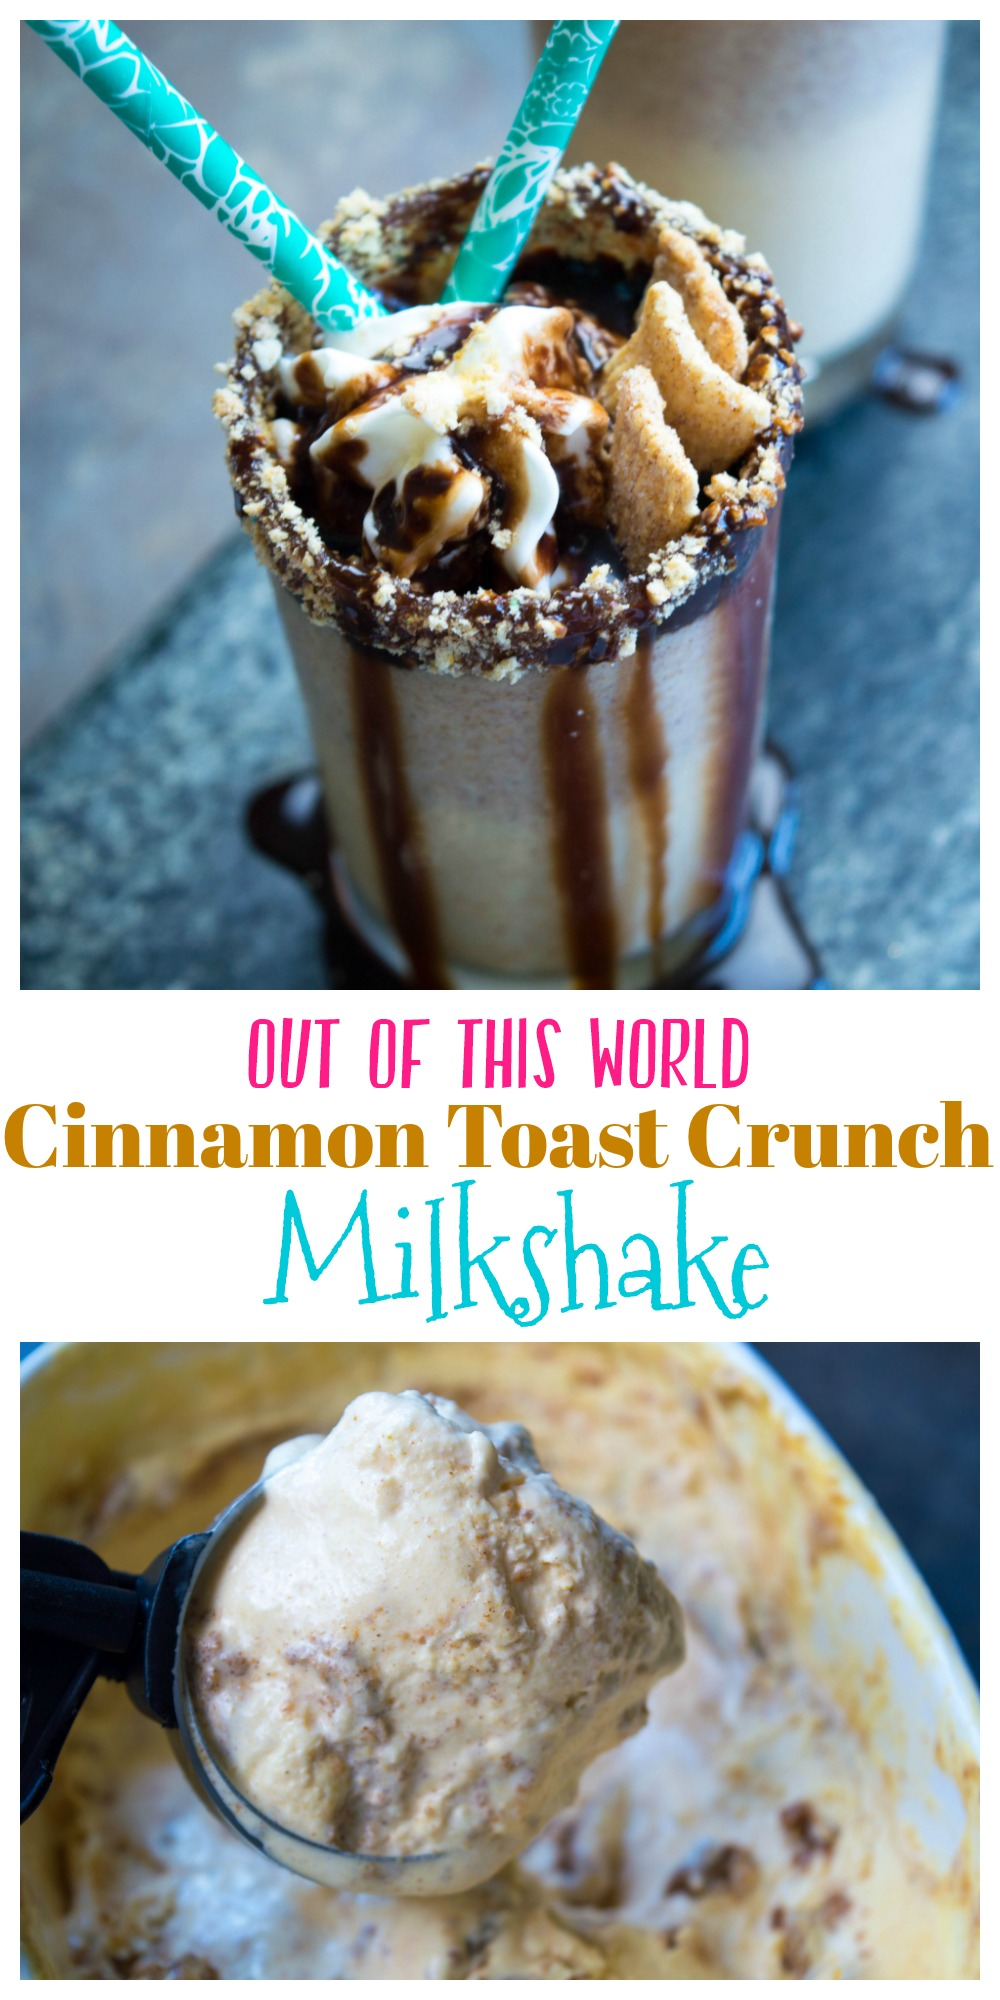 This delicious Cinnamon Toast Crunch Milkshake will rock your world! Only 3 ingredients are needed and your milkshake is ready in minutes!